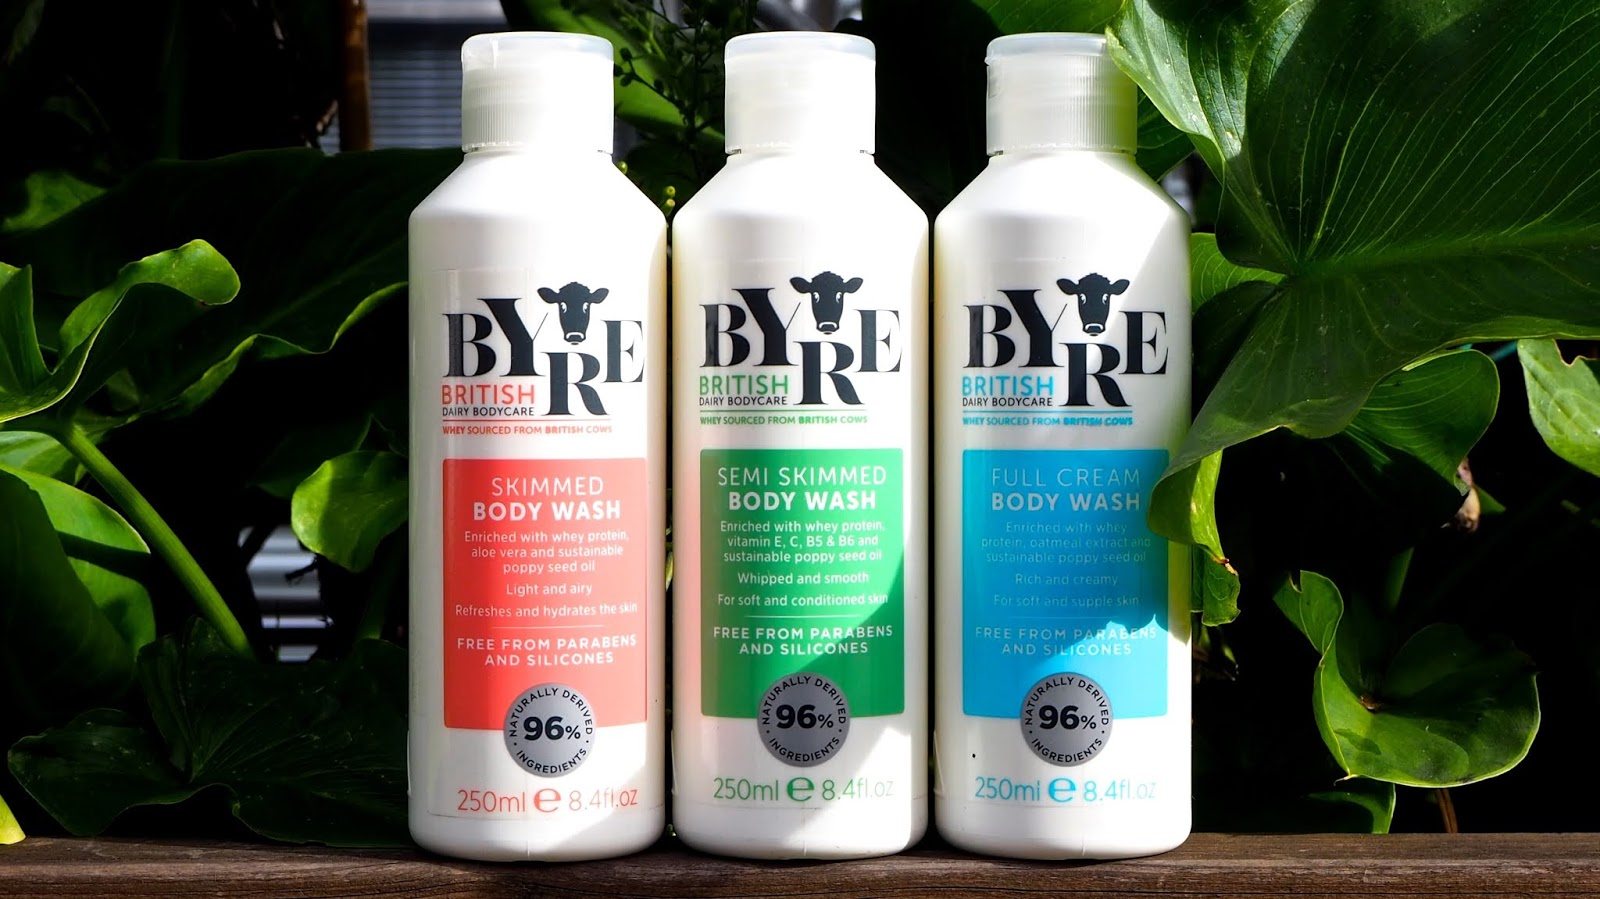 Byre Body Washes